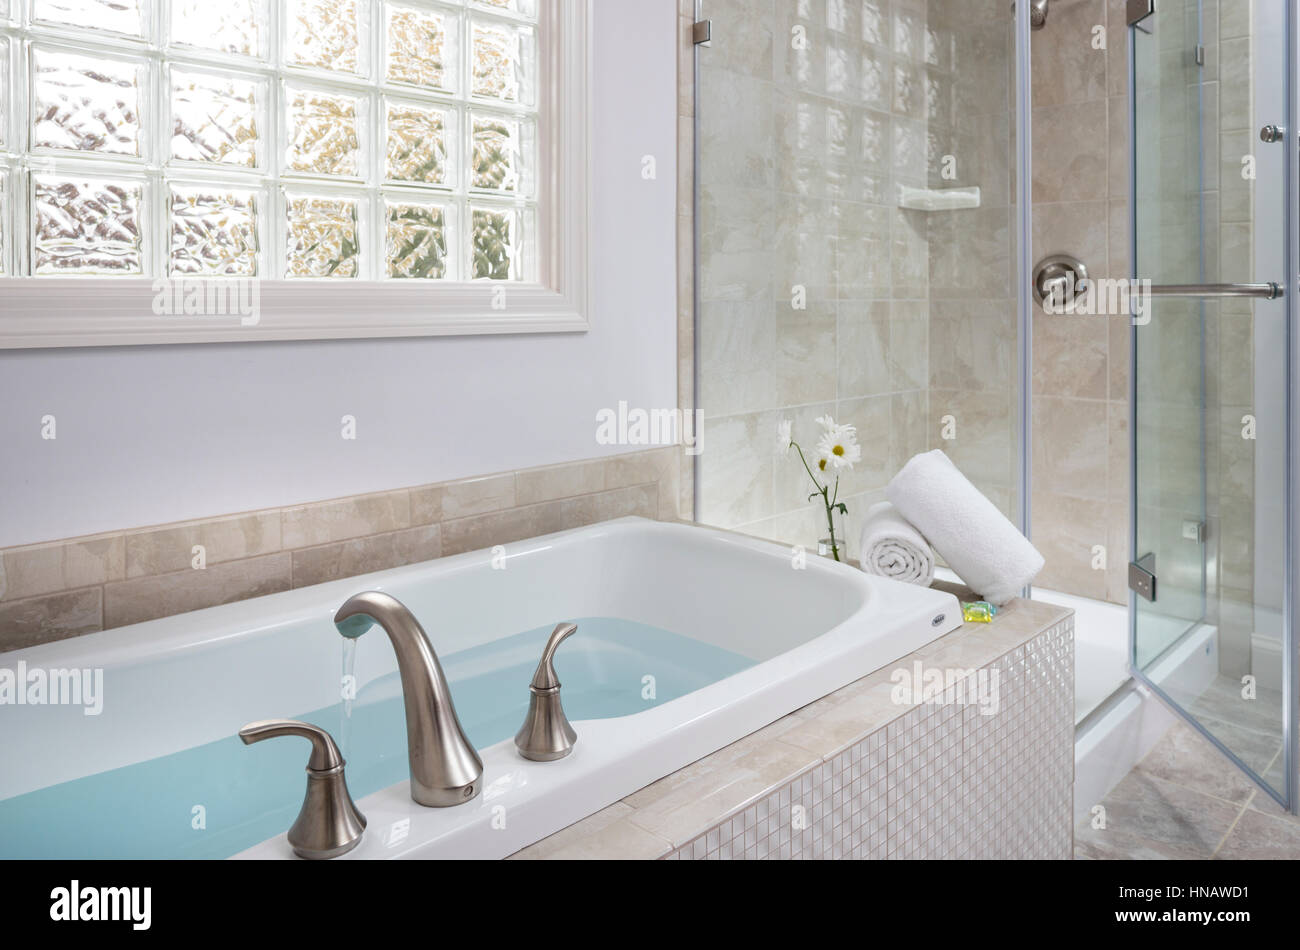 Filled Soaking Tub Next To Glass Shower, Inn On